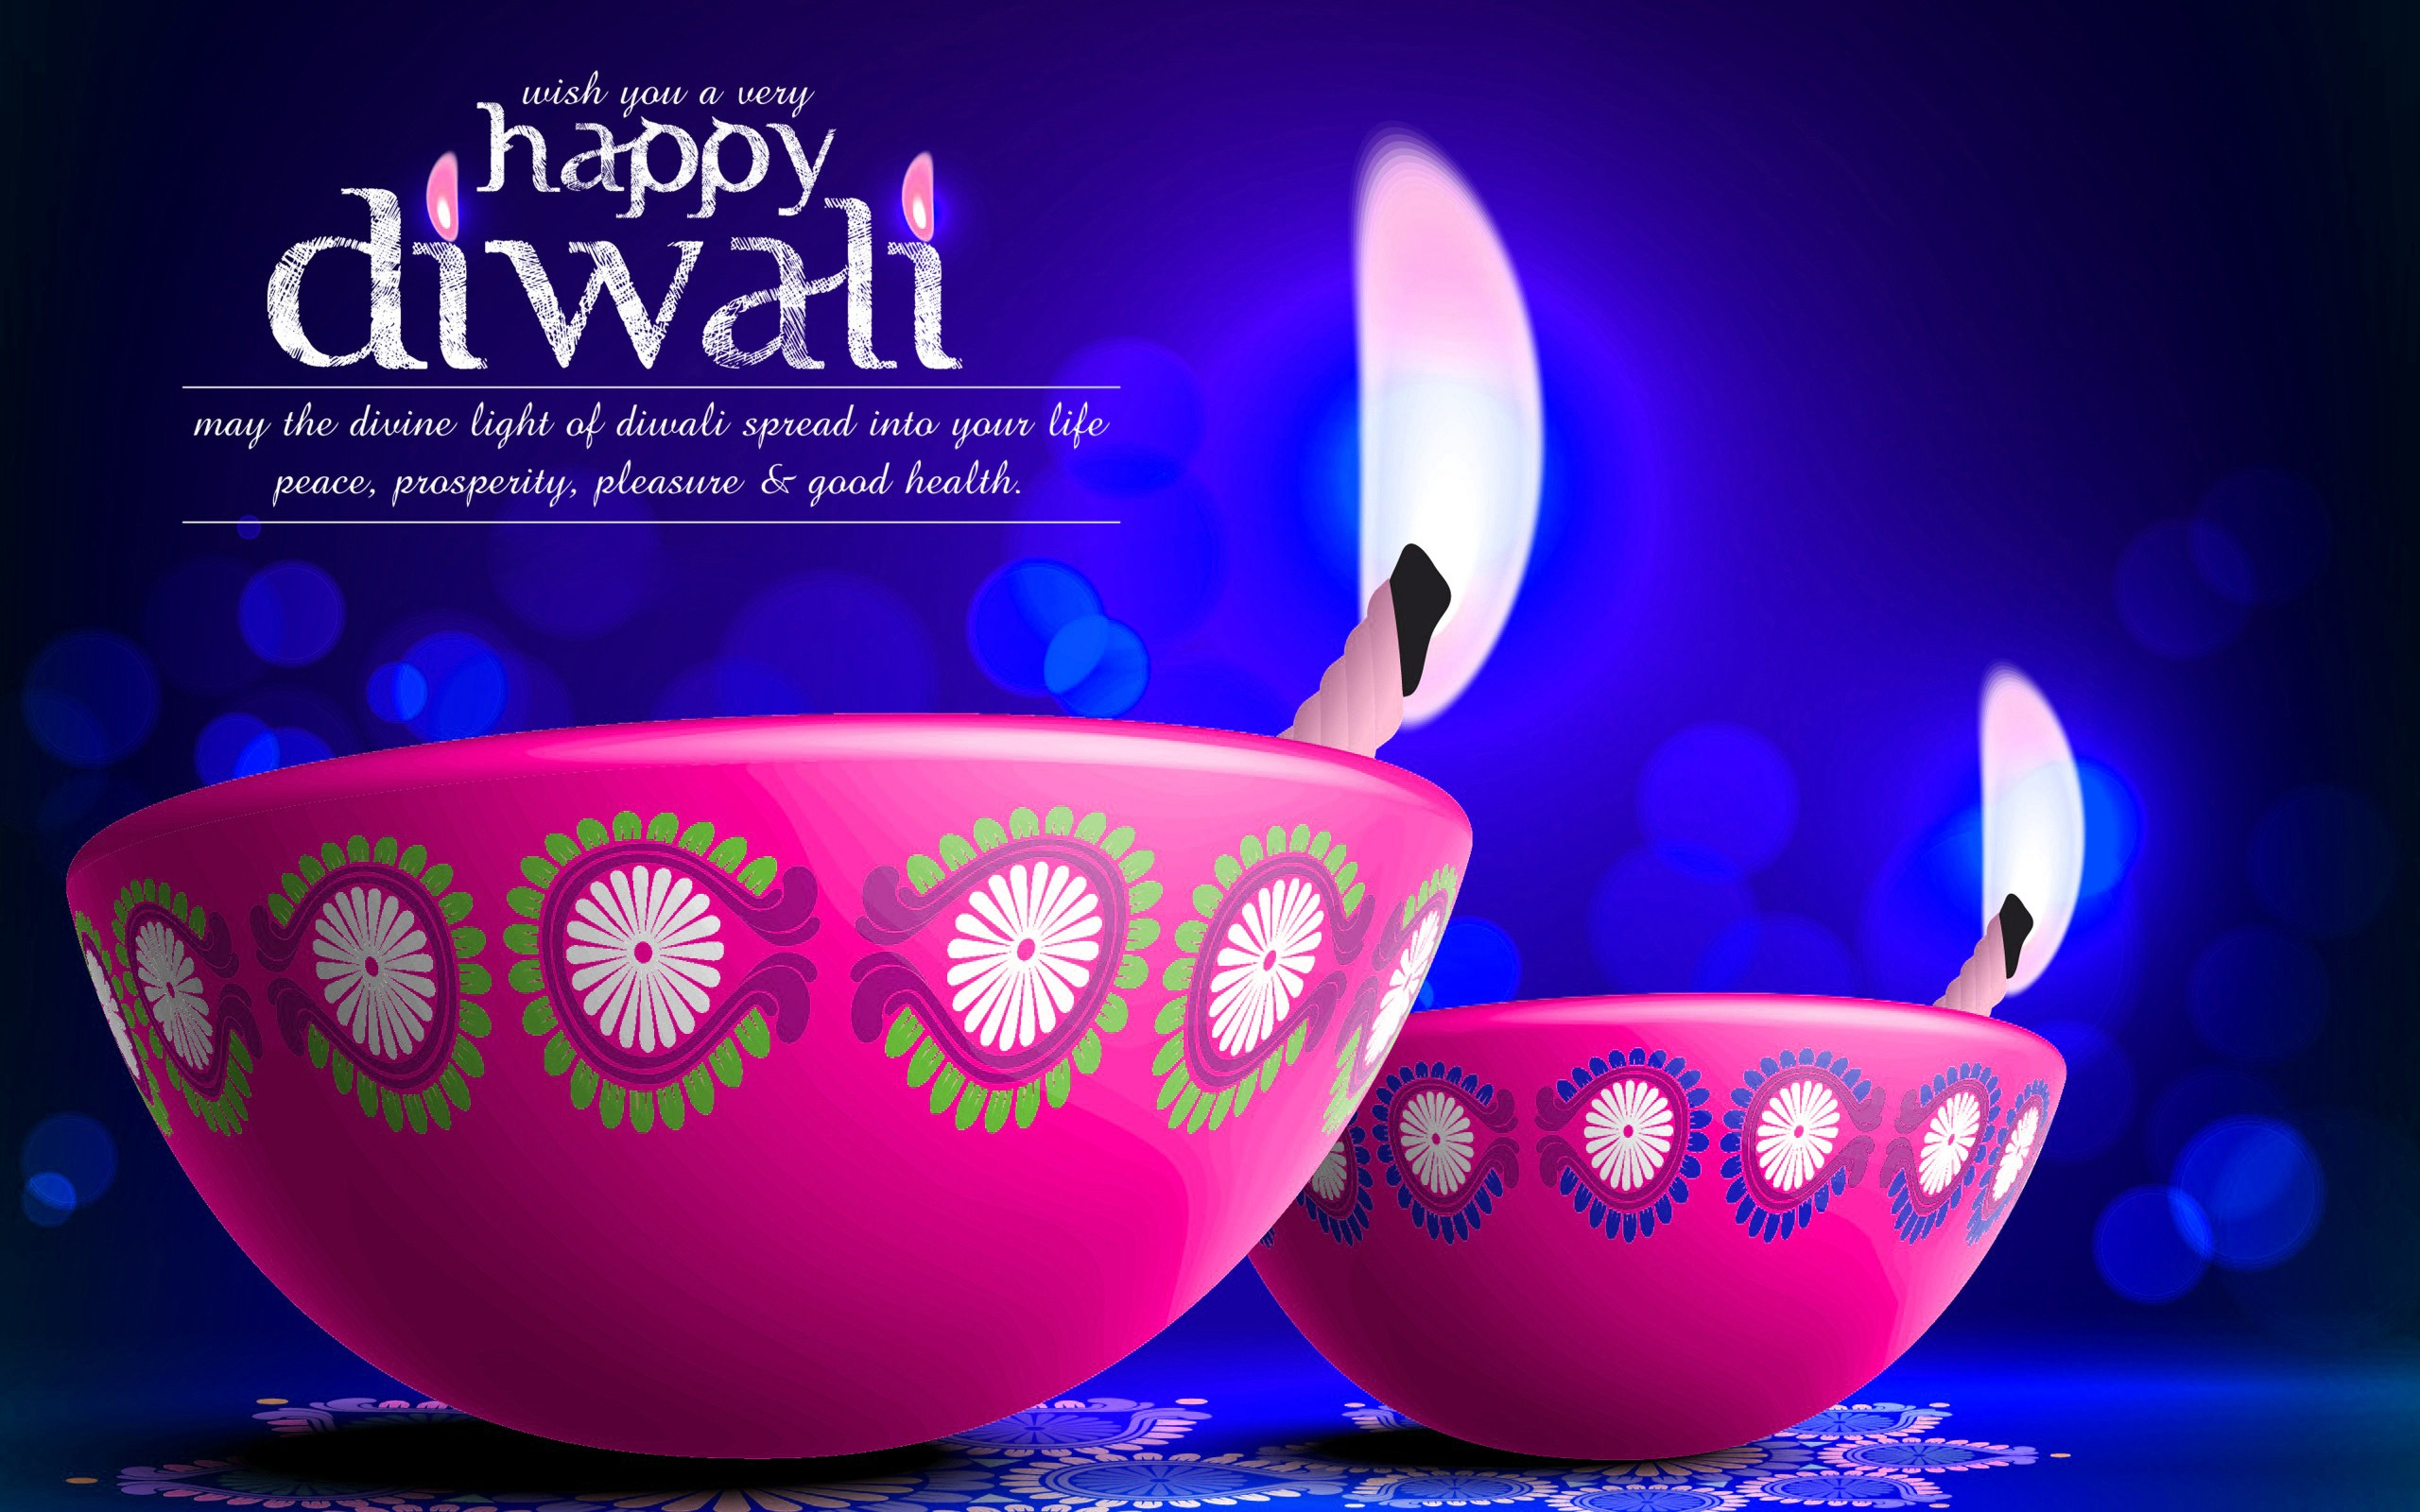 Happy diwali 2018 images quotes wishes sms greetings messages happy diwali 2018 images quotes wishes sms greetings messages pictures photos and wallpapers m4hsunfo